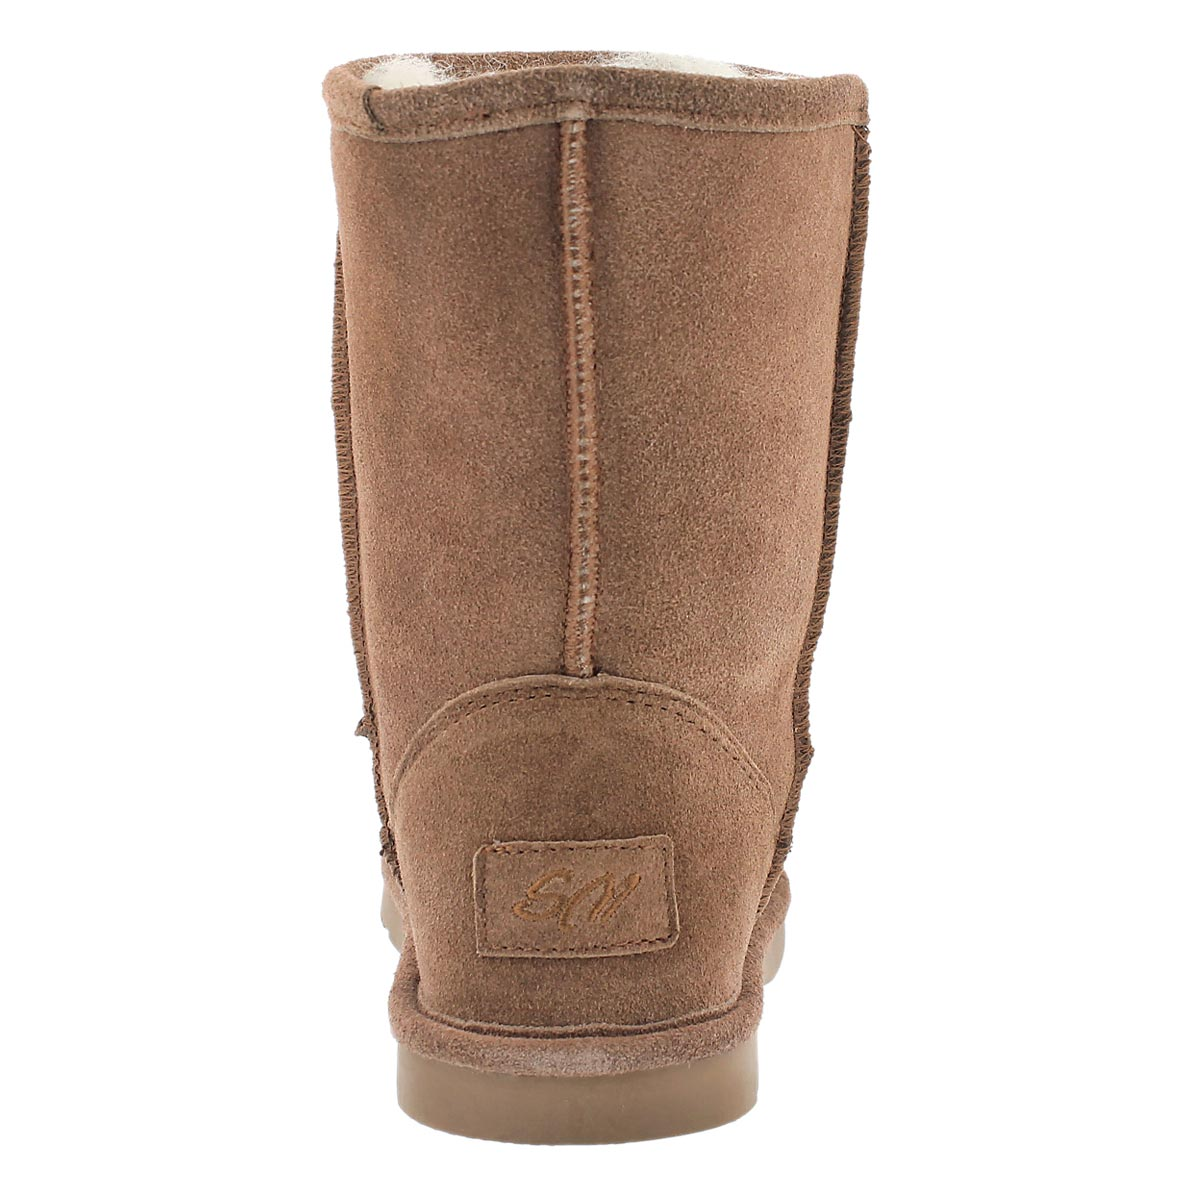 Lds Smocs 4 spice mid suede boot